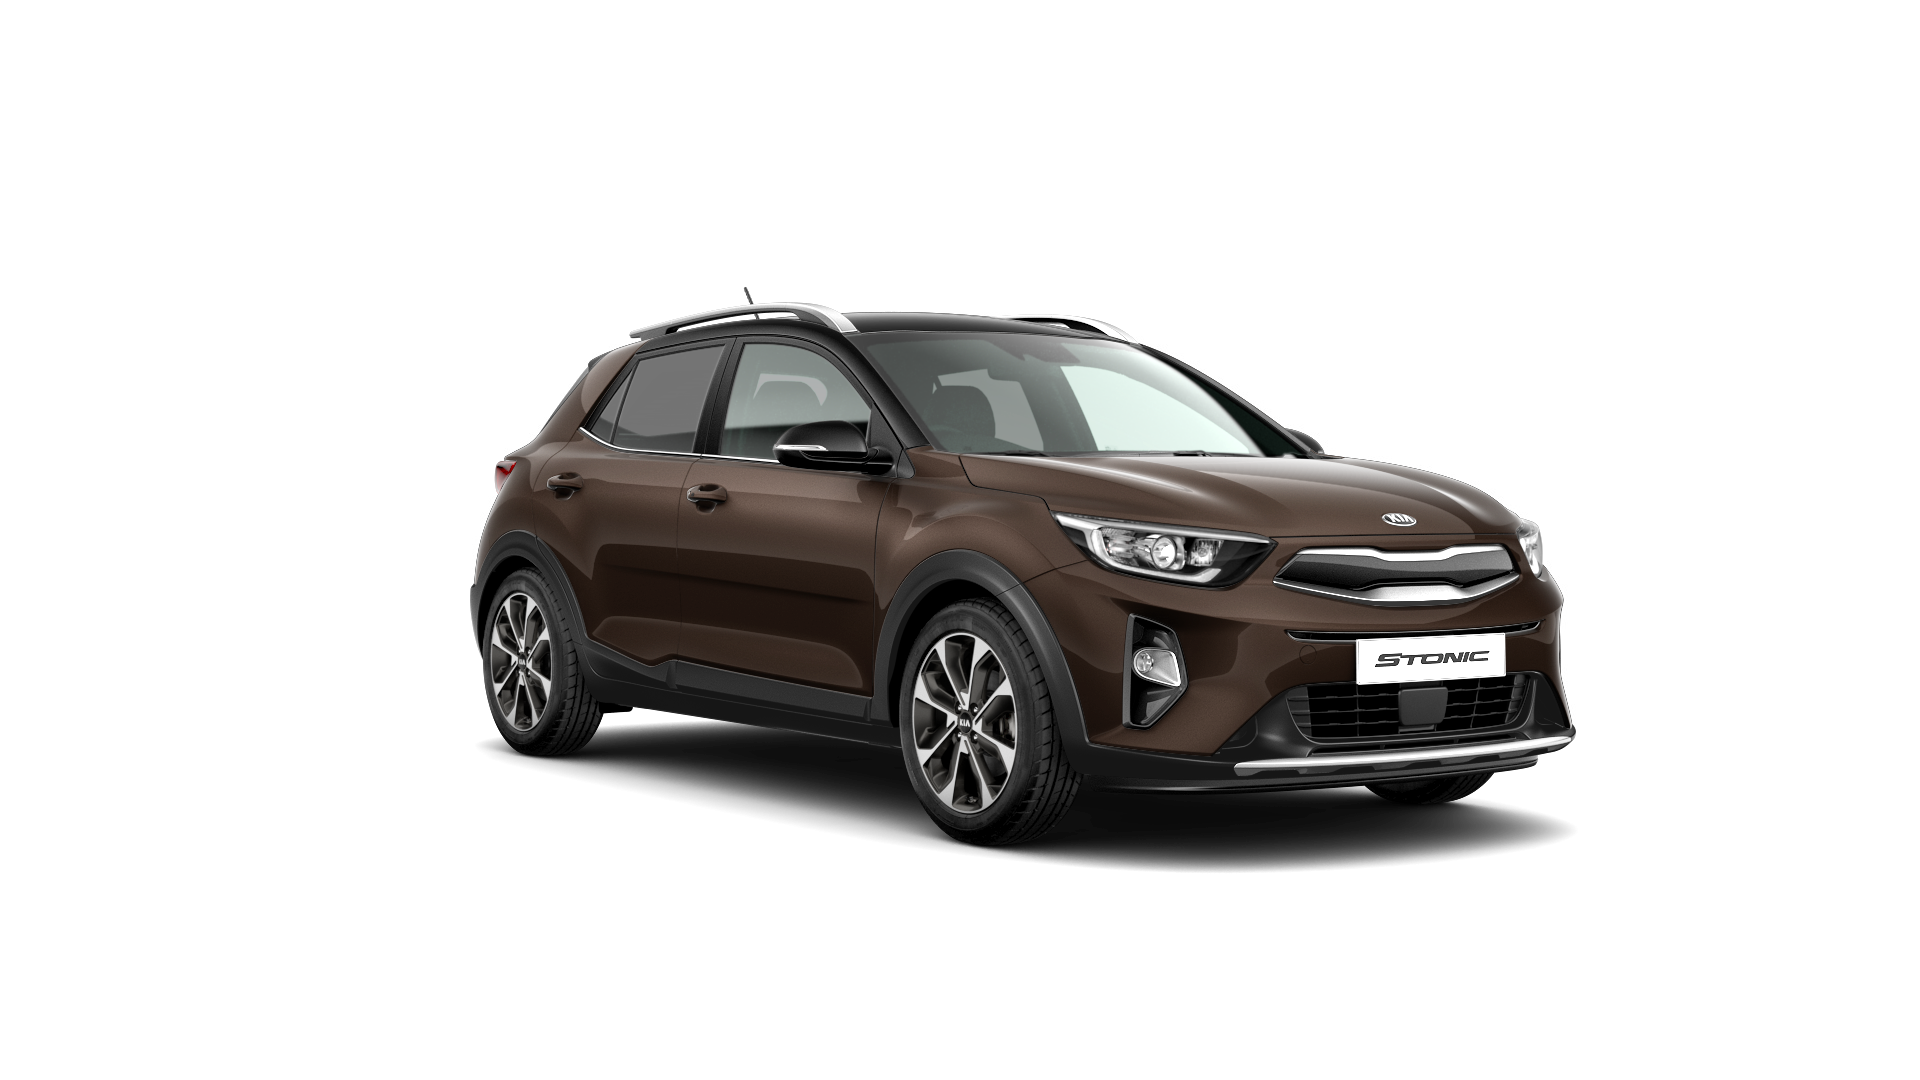 Kia Stonic First Edition - Sienna Brown / Black